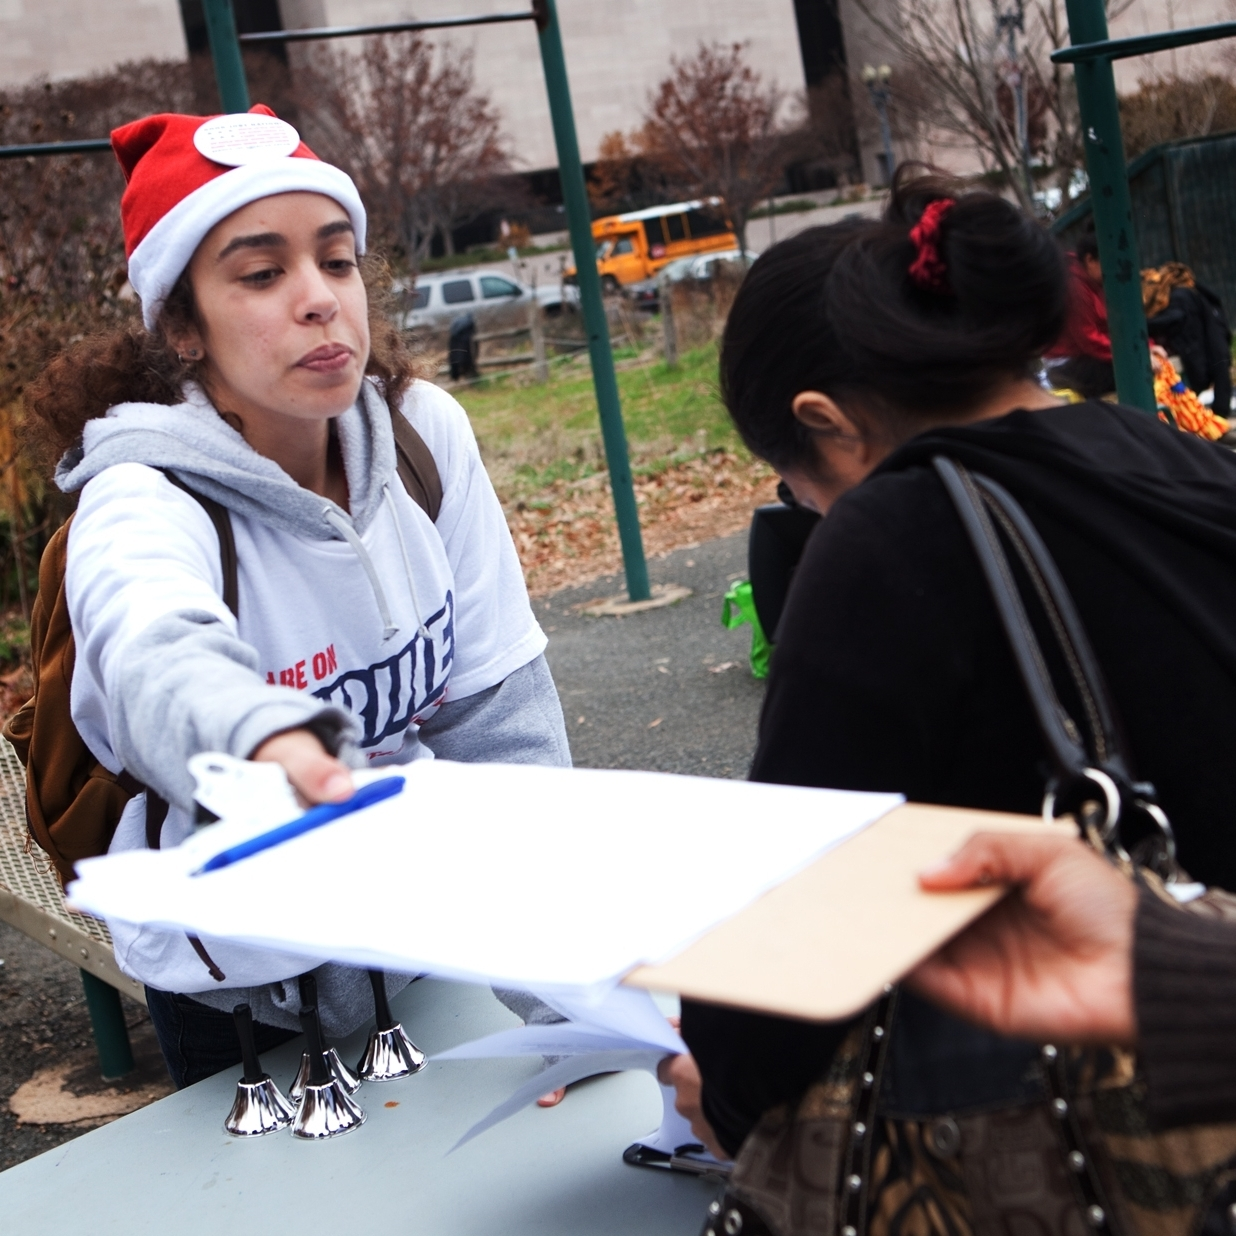 Amal Mimish, an organizer with Good Jobs Nation, registers protesters at the fast-food-workers' rally in Washington, D.C., on Thursday.